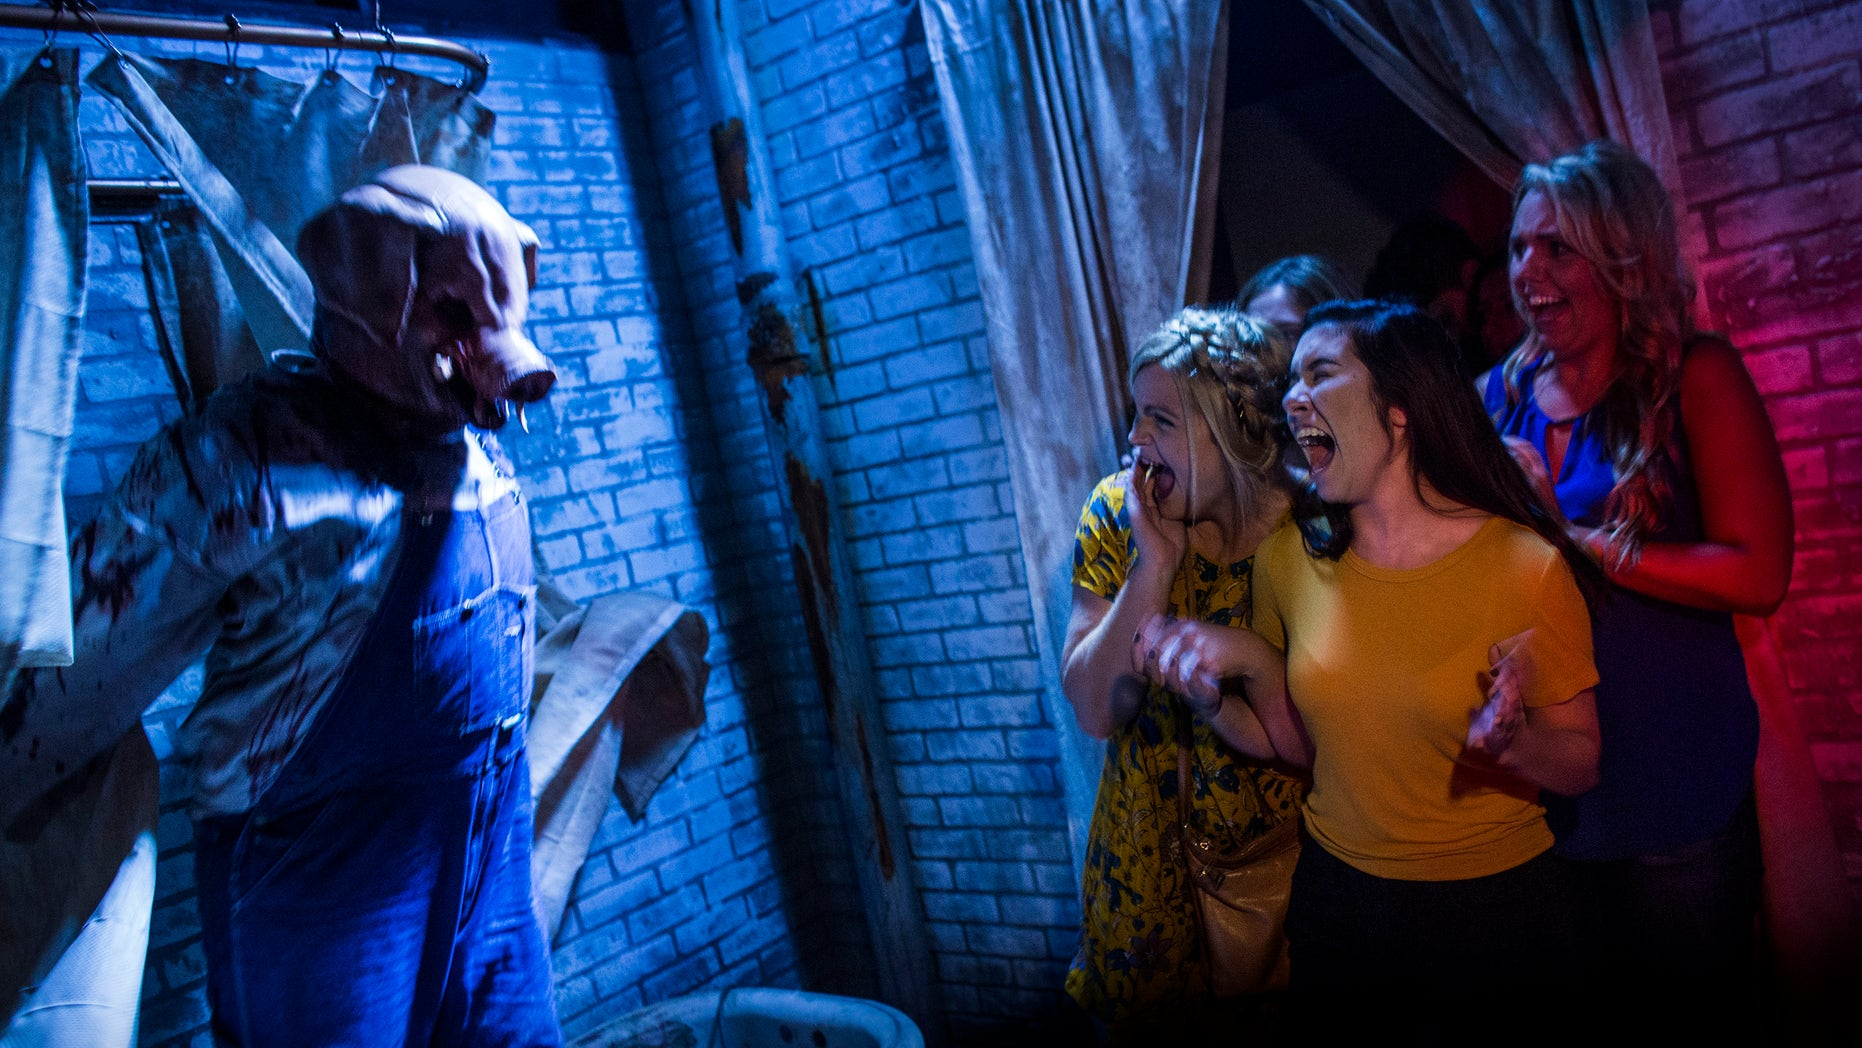 The American Horror Story attraction in Orlando may make you scream.